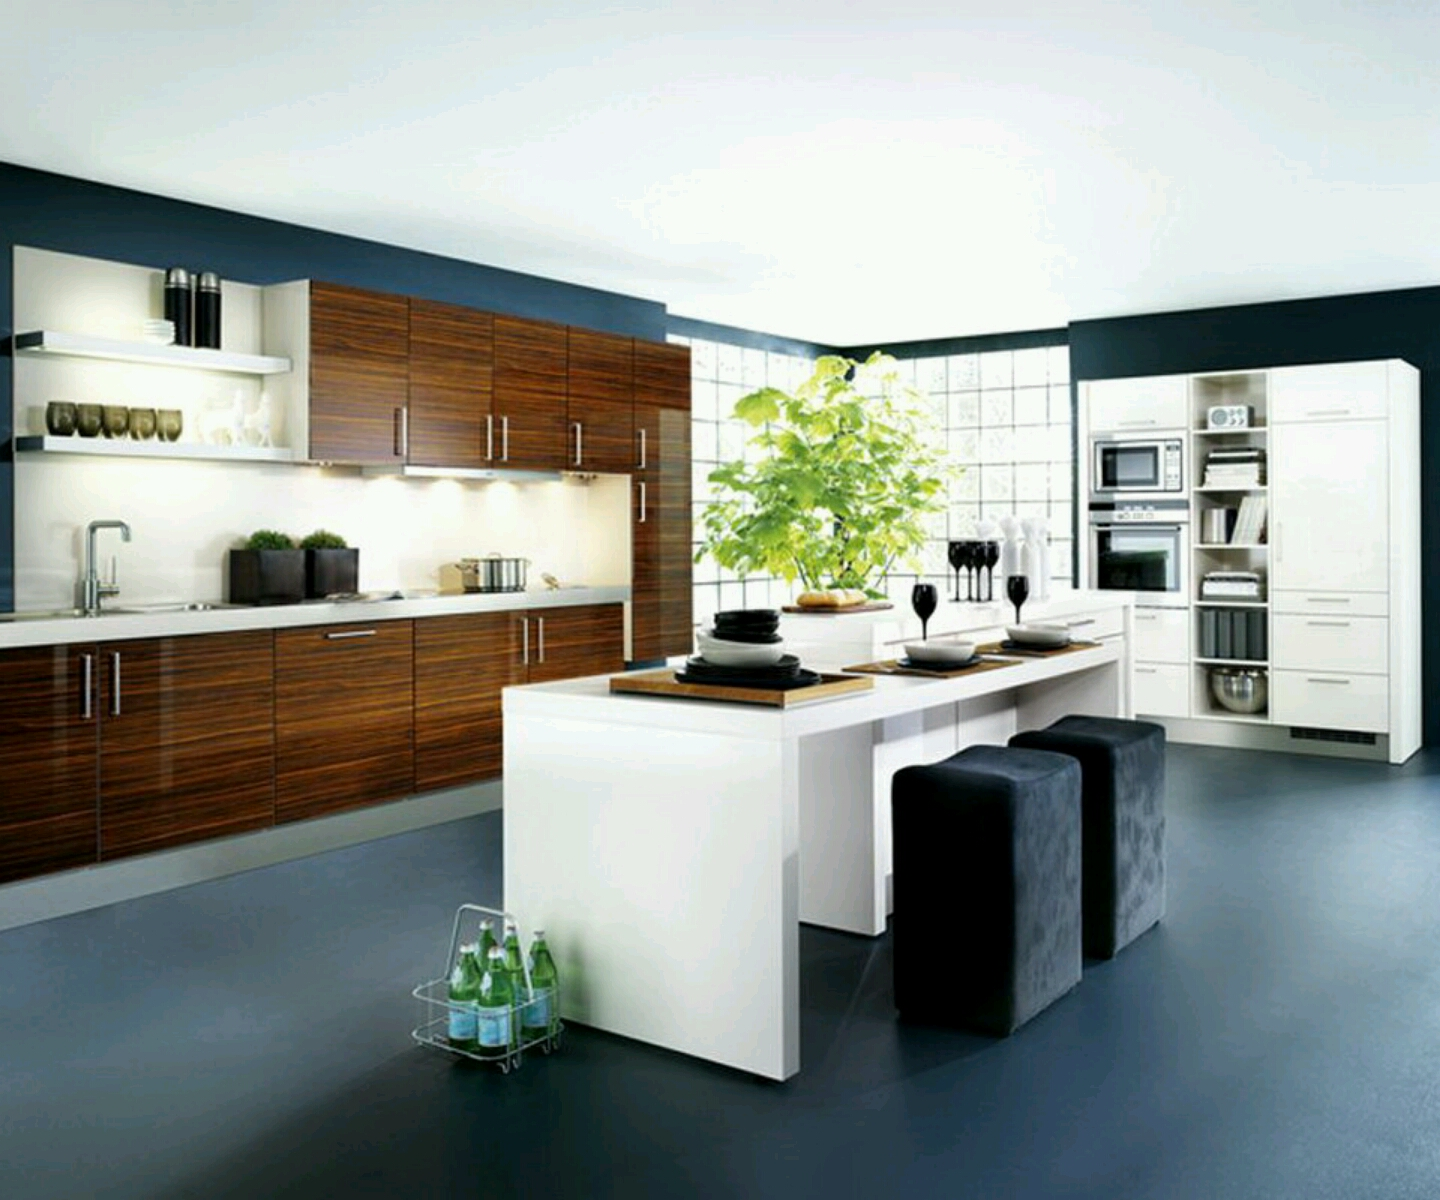 new home designs latest kitchen cabinets designs modern ForContemporary Kitchen Design